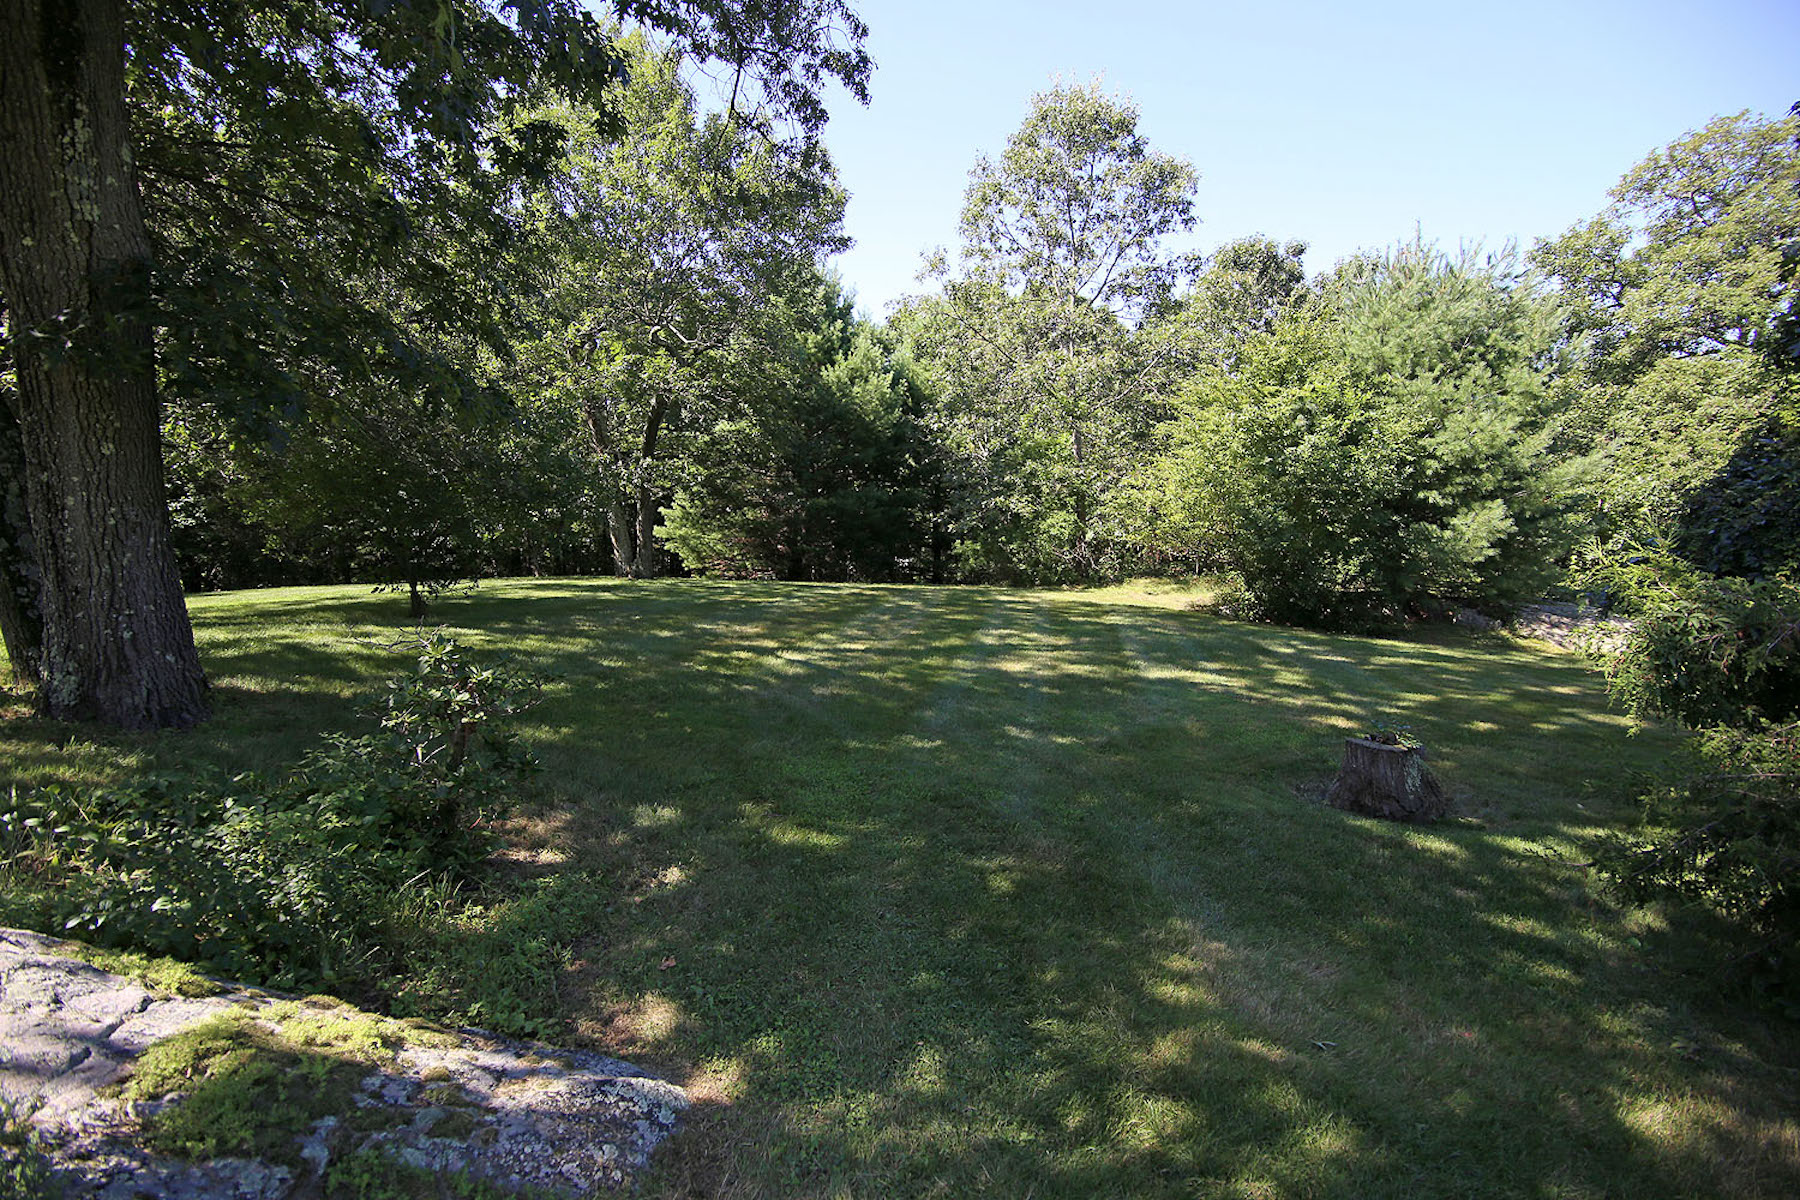 Land for Sale at 60 Schoolmasters Lane, Dedham Precinct I Land Residential 60 Schoolmasters Ln Dedham, Massachusetts 02026 United States